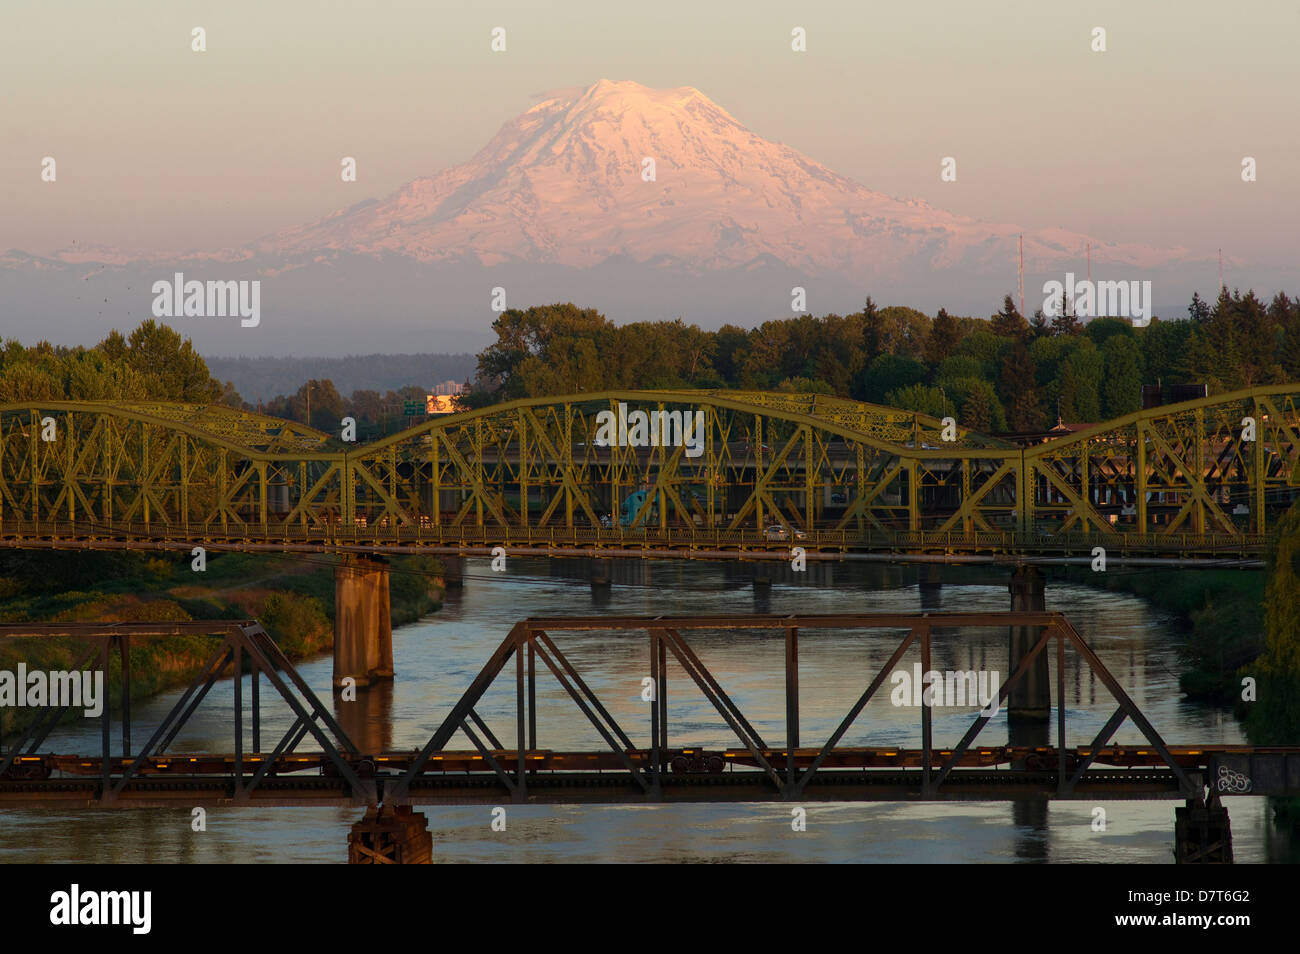 Puyallup River Stock Photos & Puyallup River Stock Images - Alamy